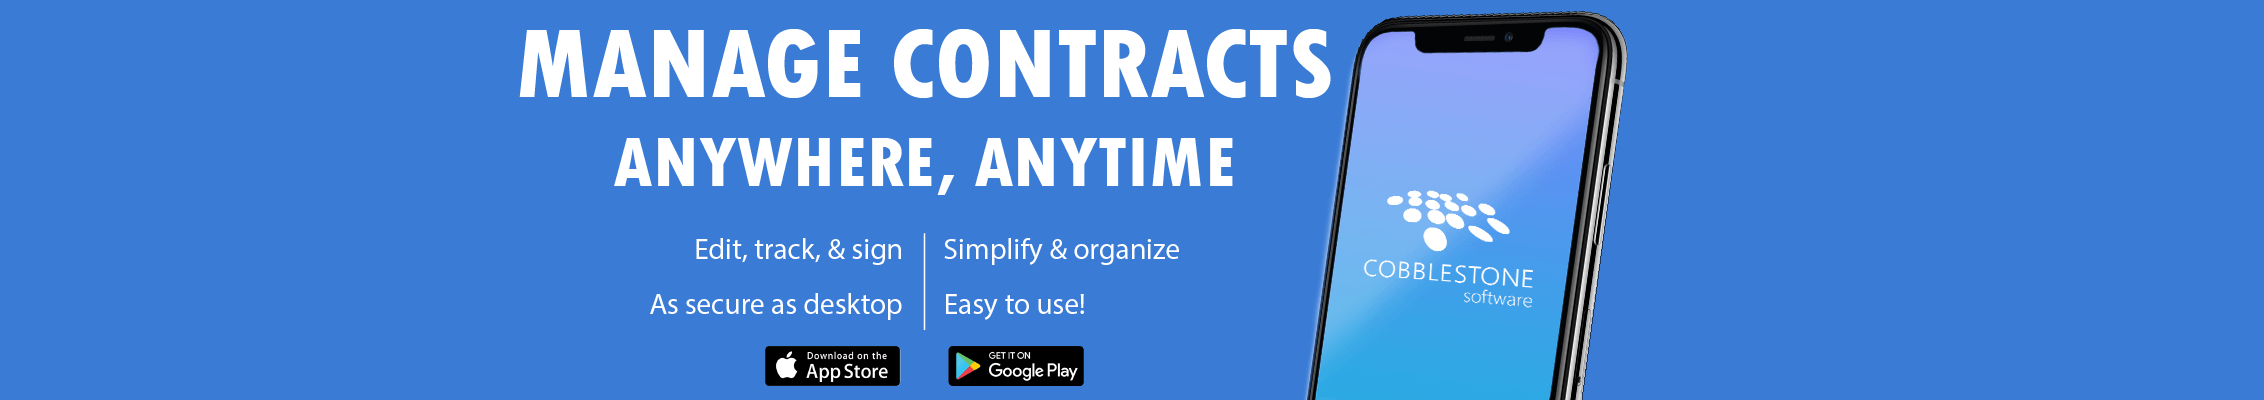 Managing Contracts Anywhere, Anytime is Easy with CobbleStone Software